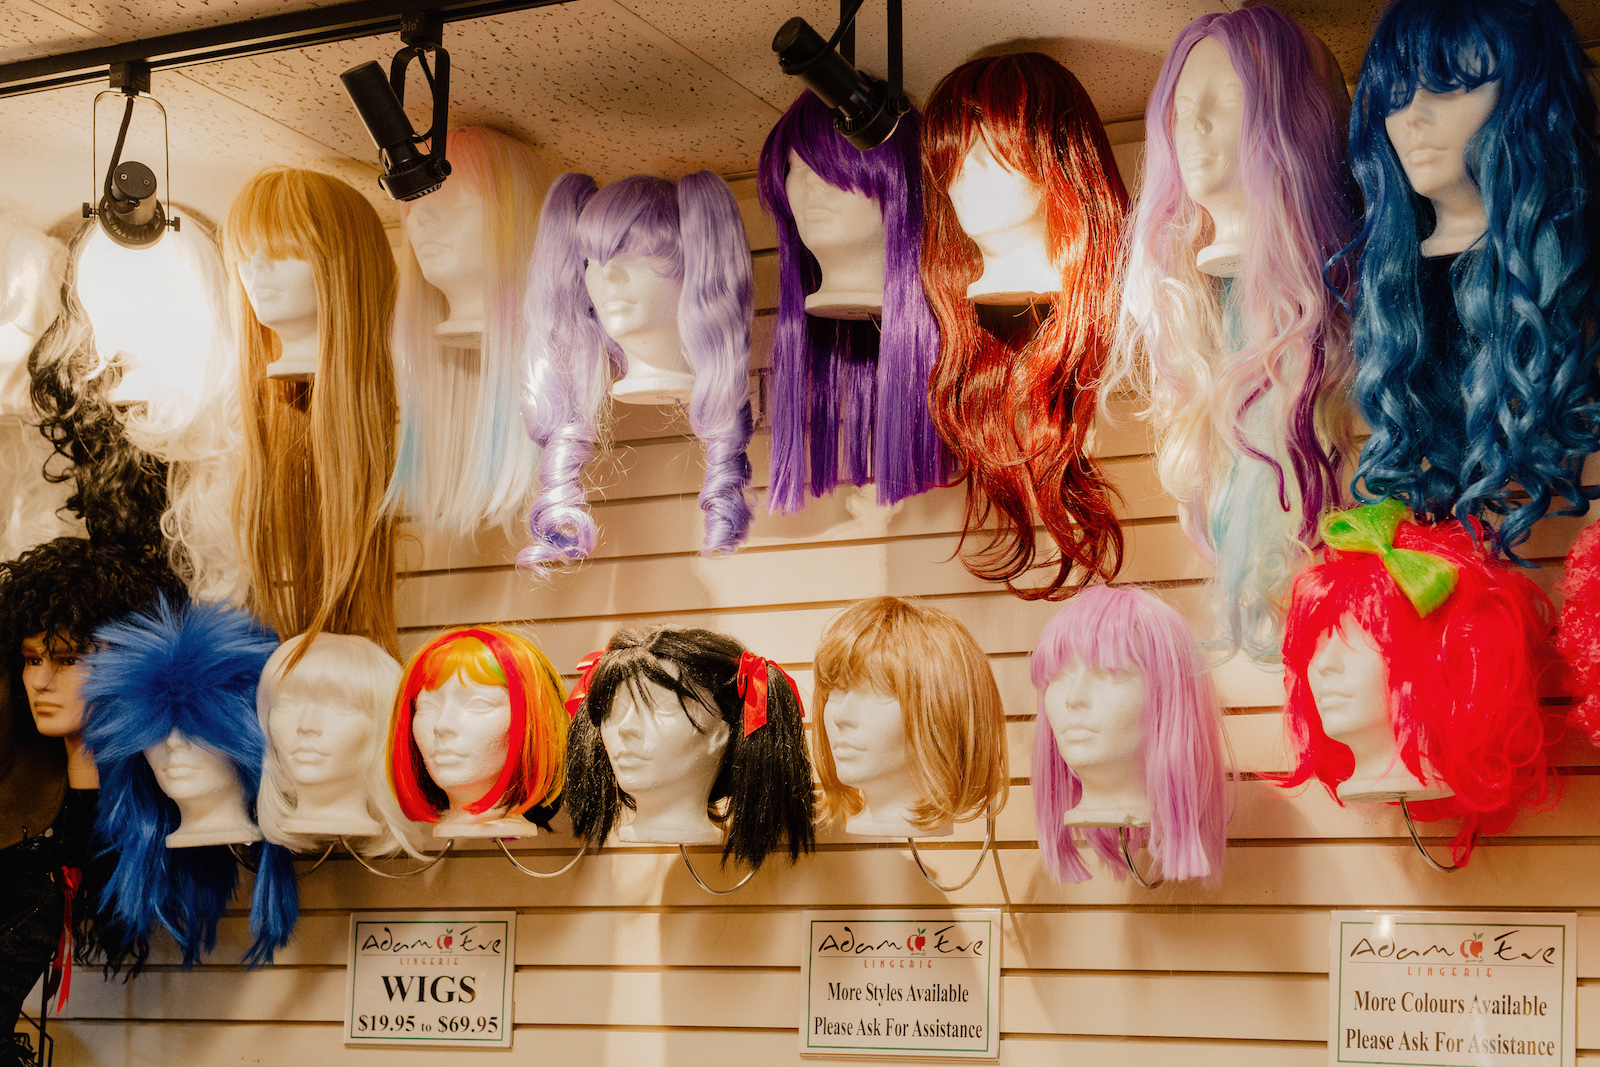 851px version of IMAGE.Sex-Shop-Wigs.jpg